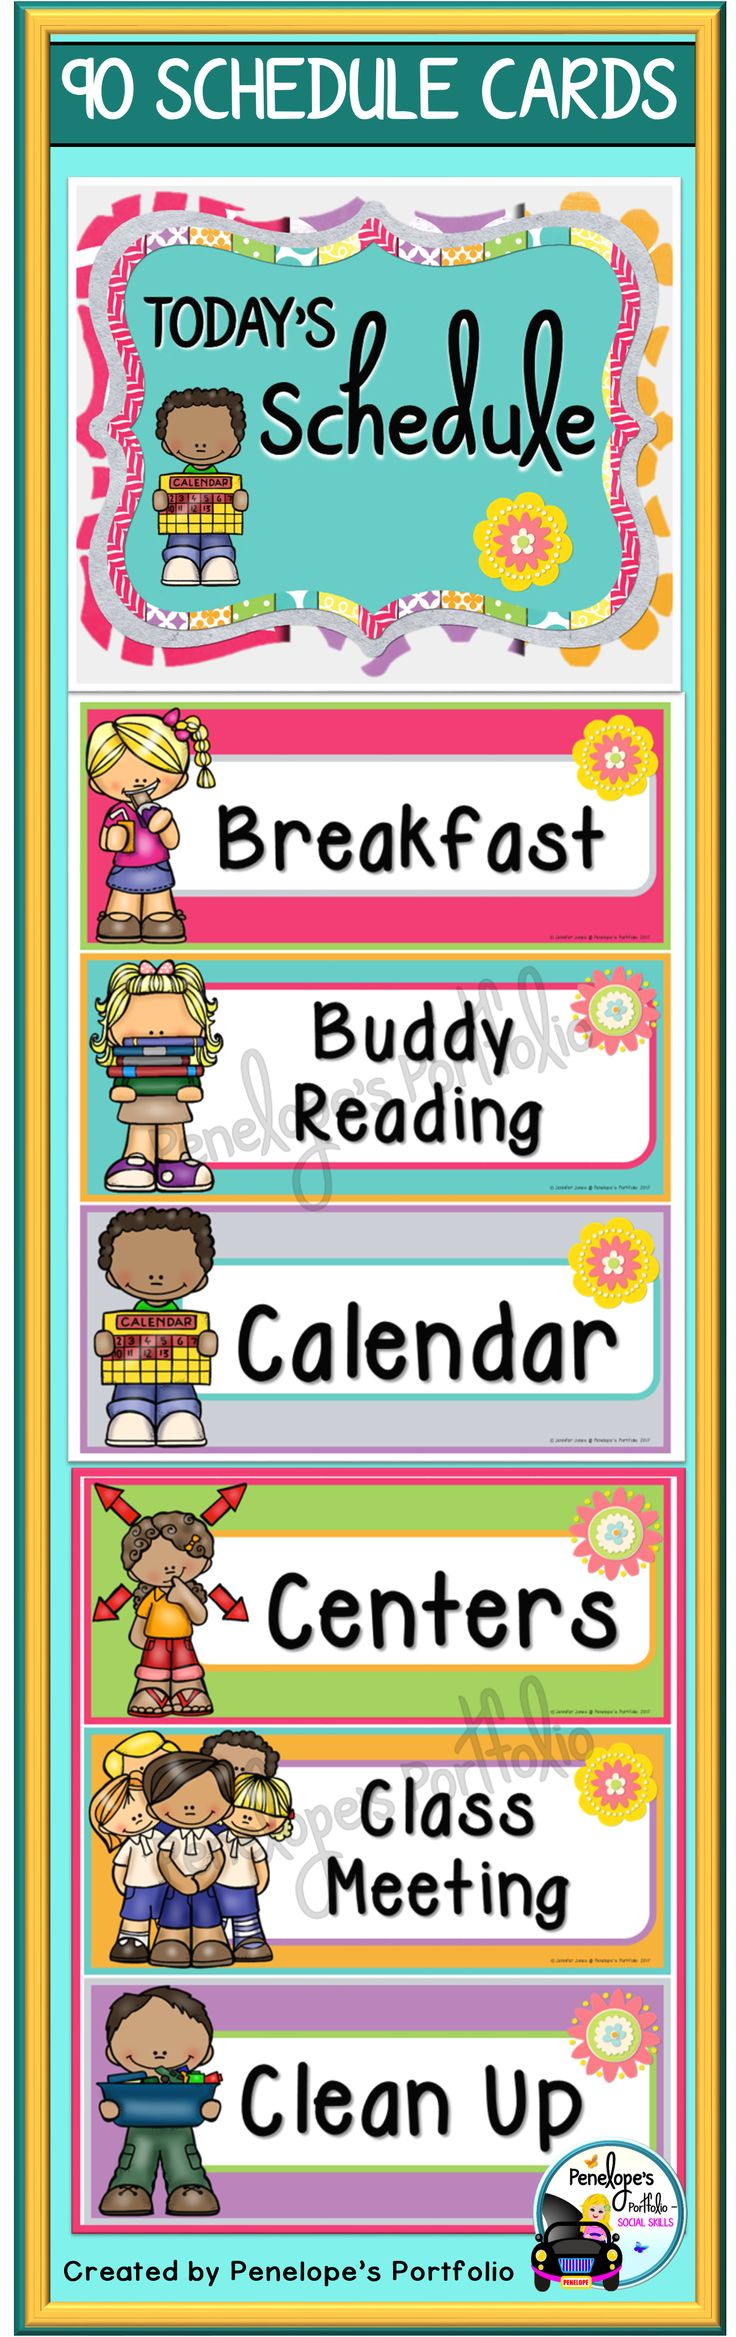 These 90 colorful schedule cards create a visual schedule of daily events in your school classroom. Print & go with the pdf version, or edit text to personalize your own schedule with the editable PowerPoint version. https://www.teacherspayteachers.com/Product/Daily-Schedule-Cards-Editable-3395271